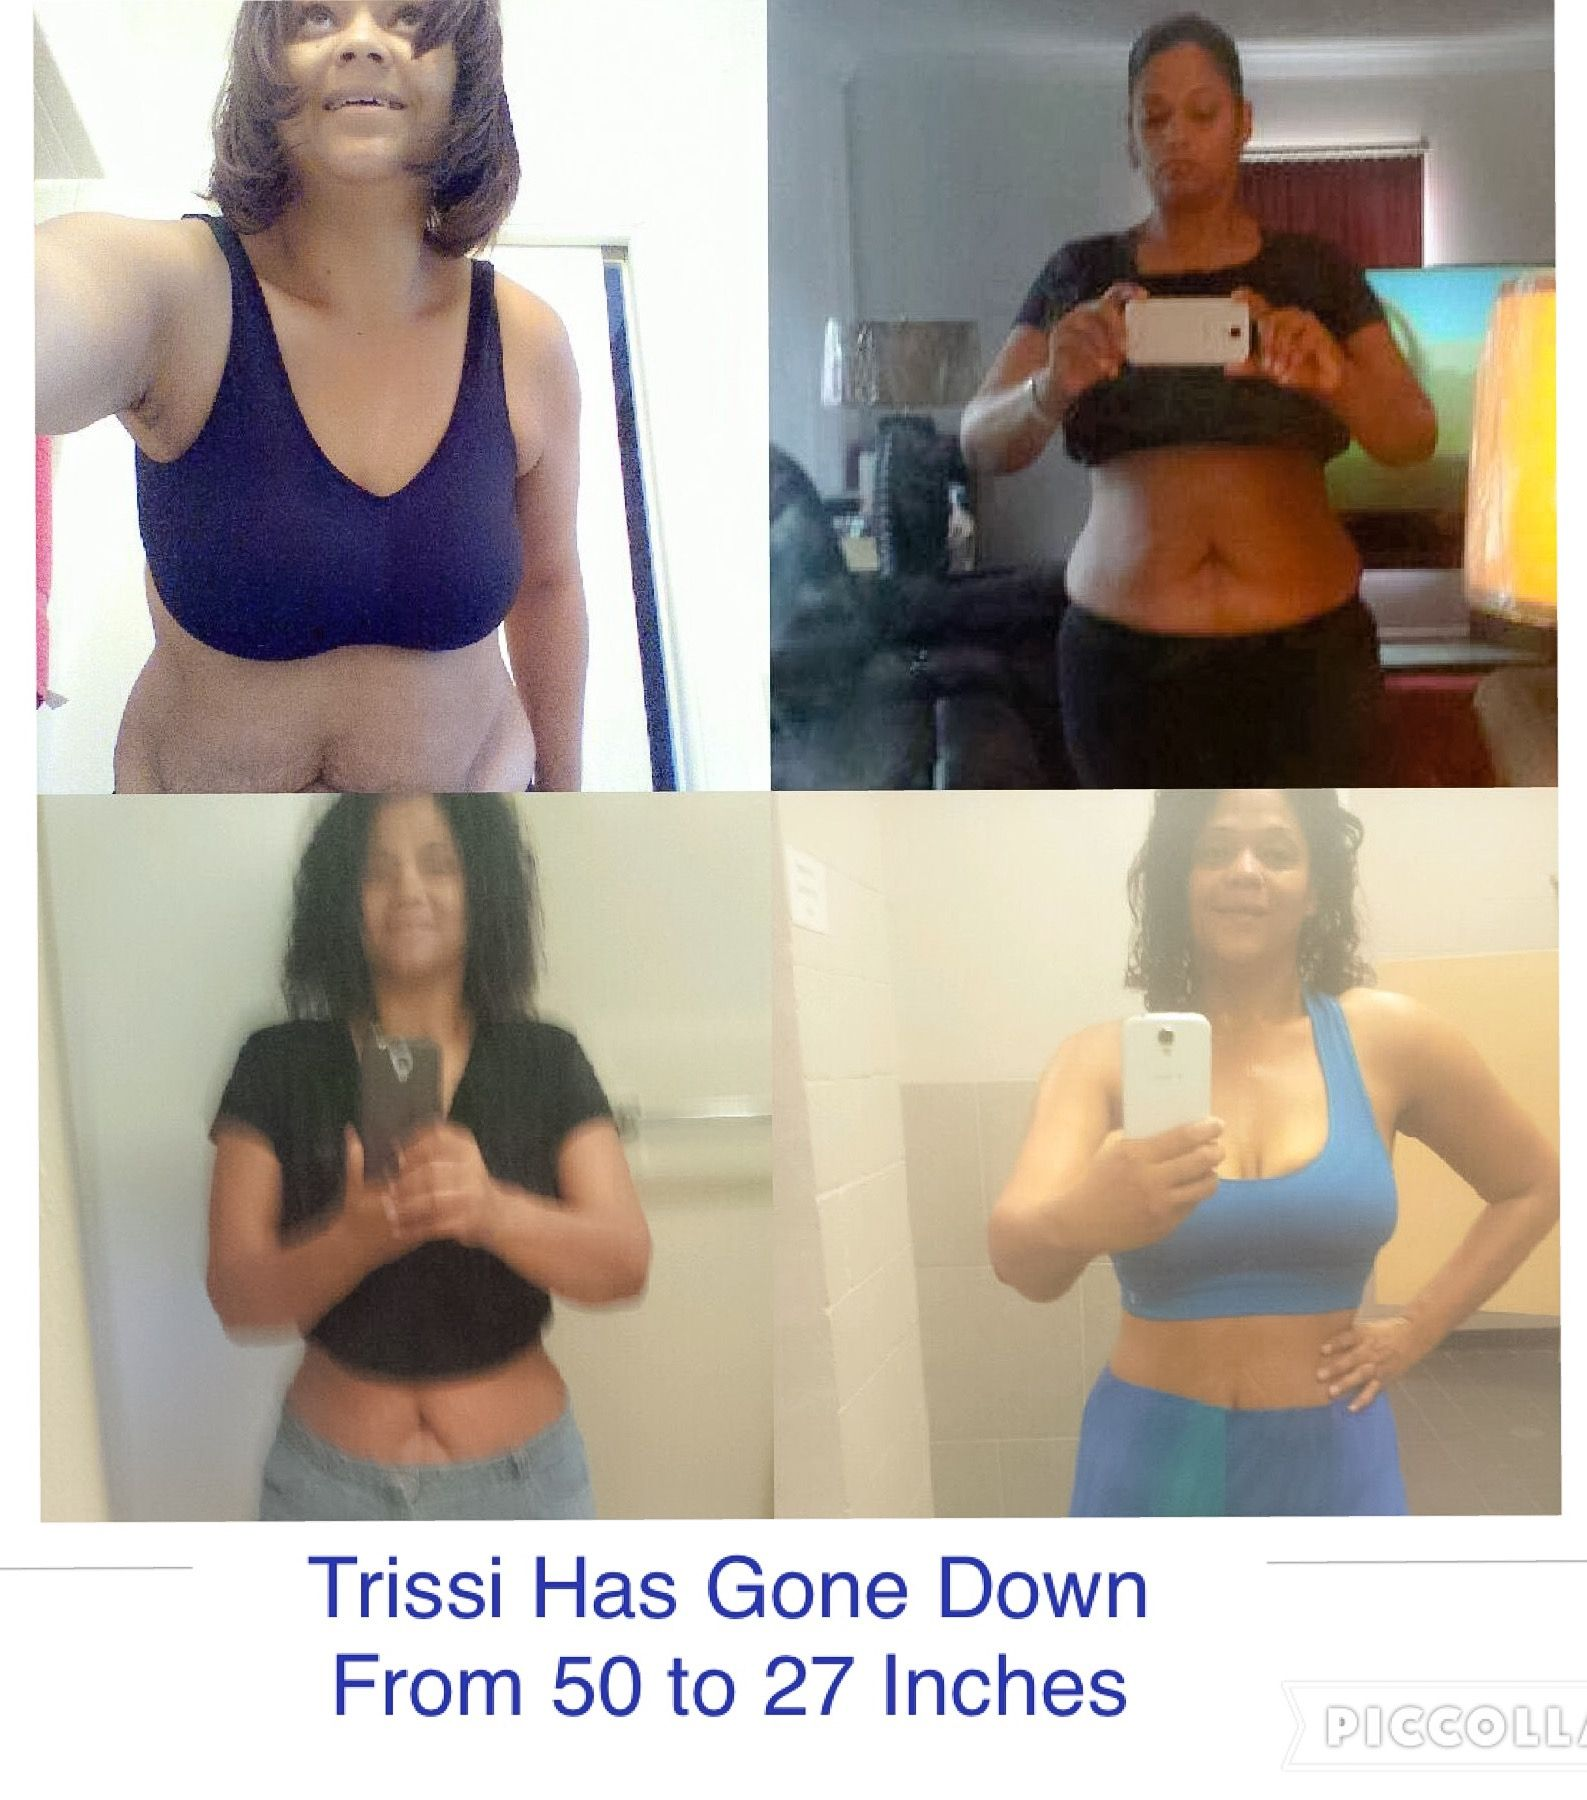 30-Day Flat Belly Challenge: Trissi: My Waist Went from 50 Inches to 27 Inches!